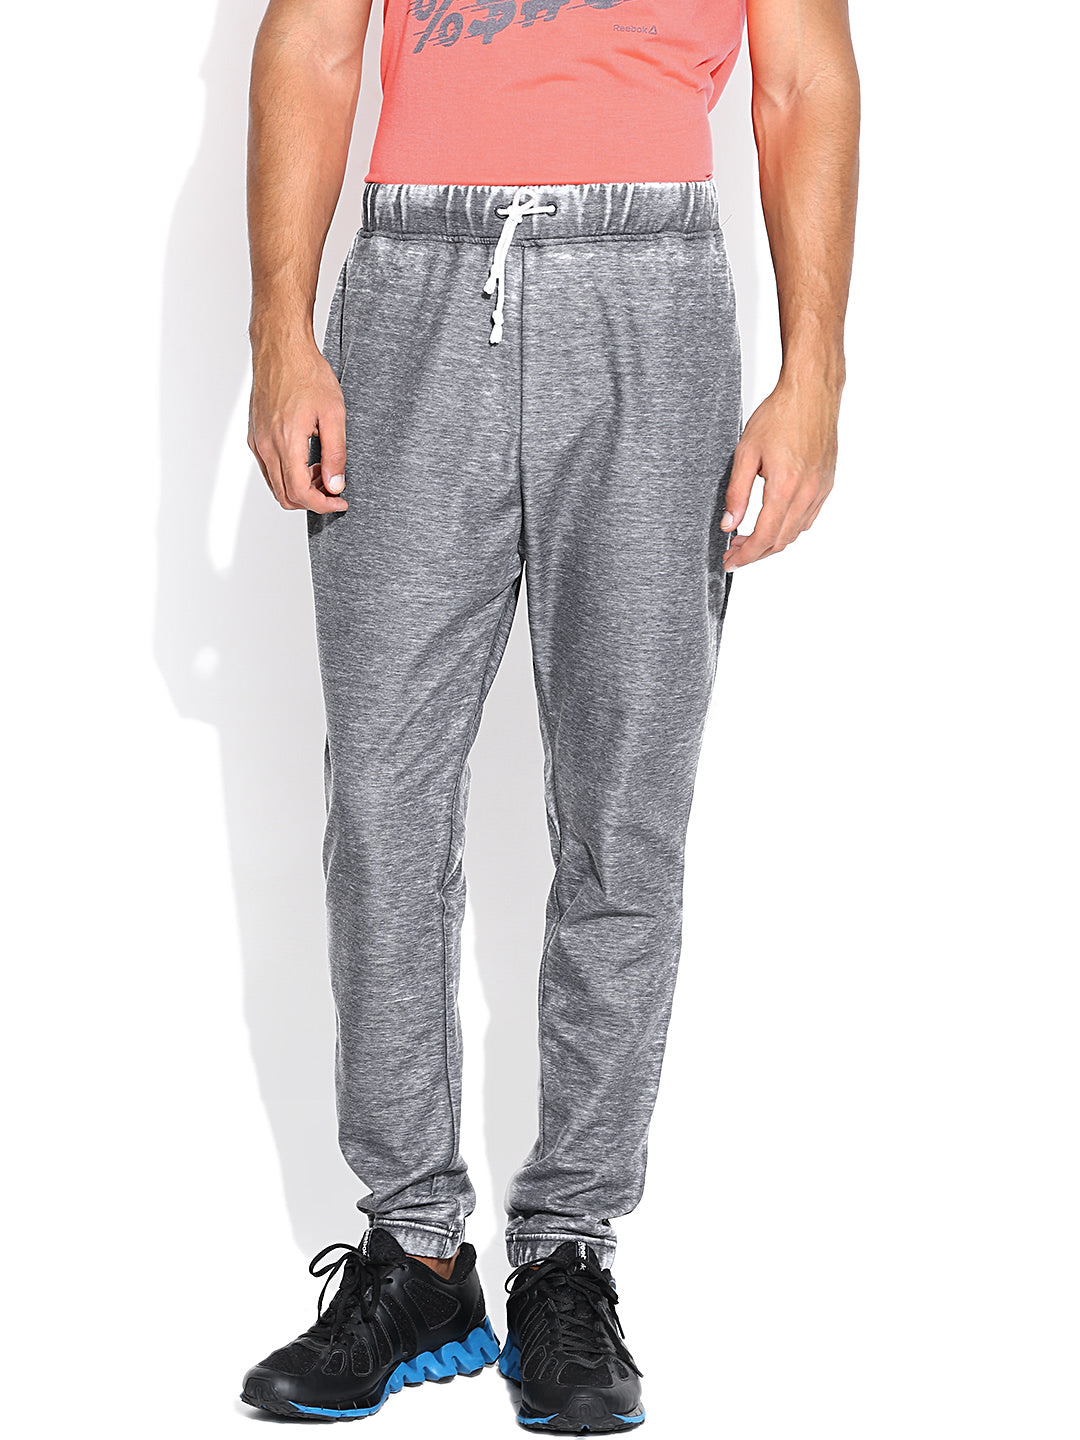 Reebok Men's Knit Pants AB8233